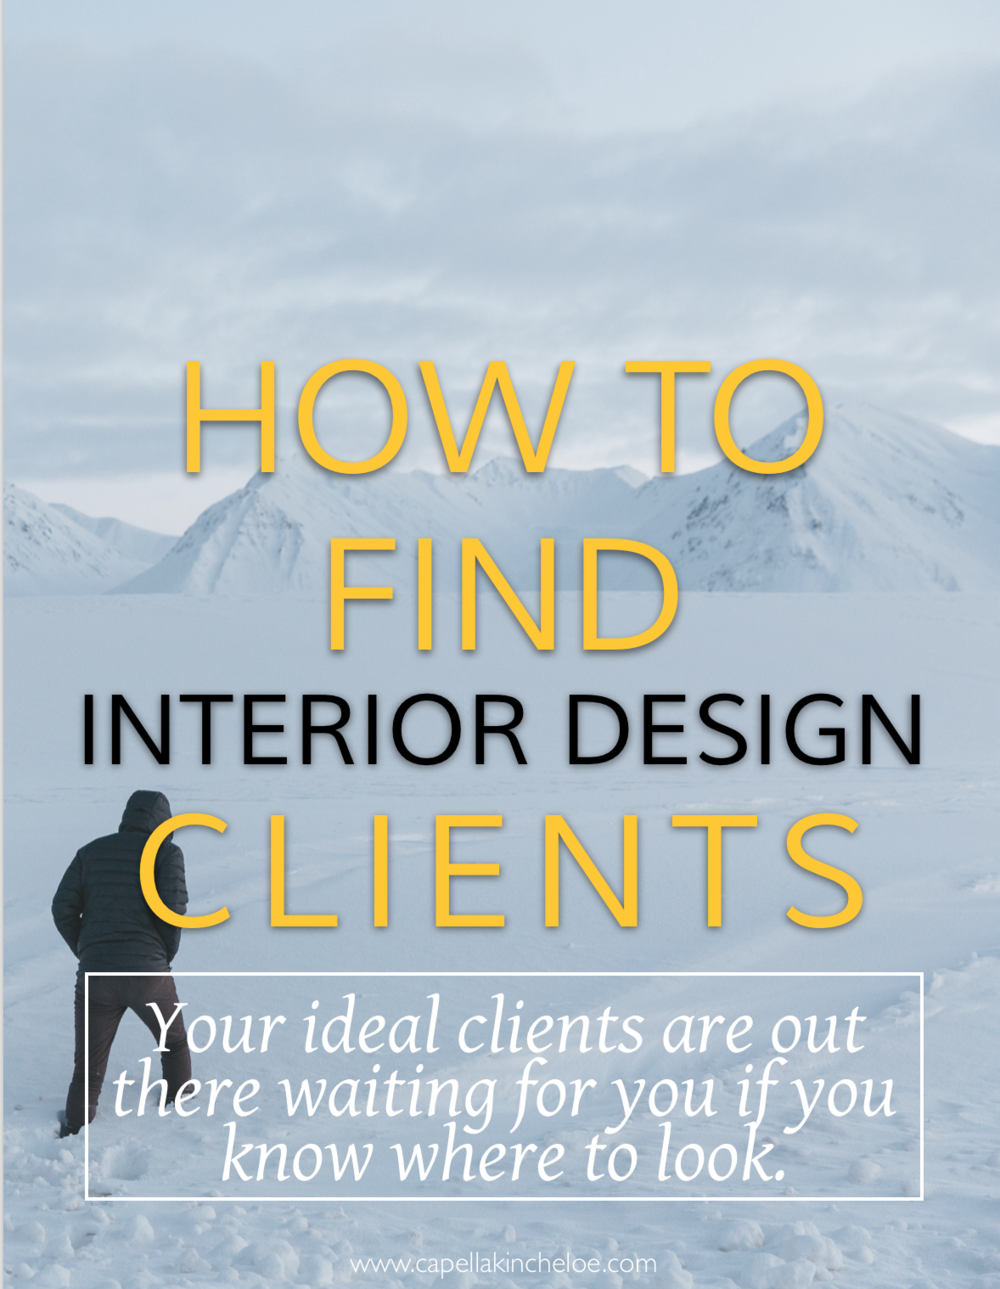 Good Your Ideal Clients Are Out There, You Just Need To Know Where To Find Them